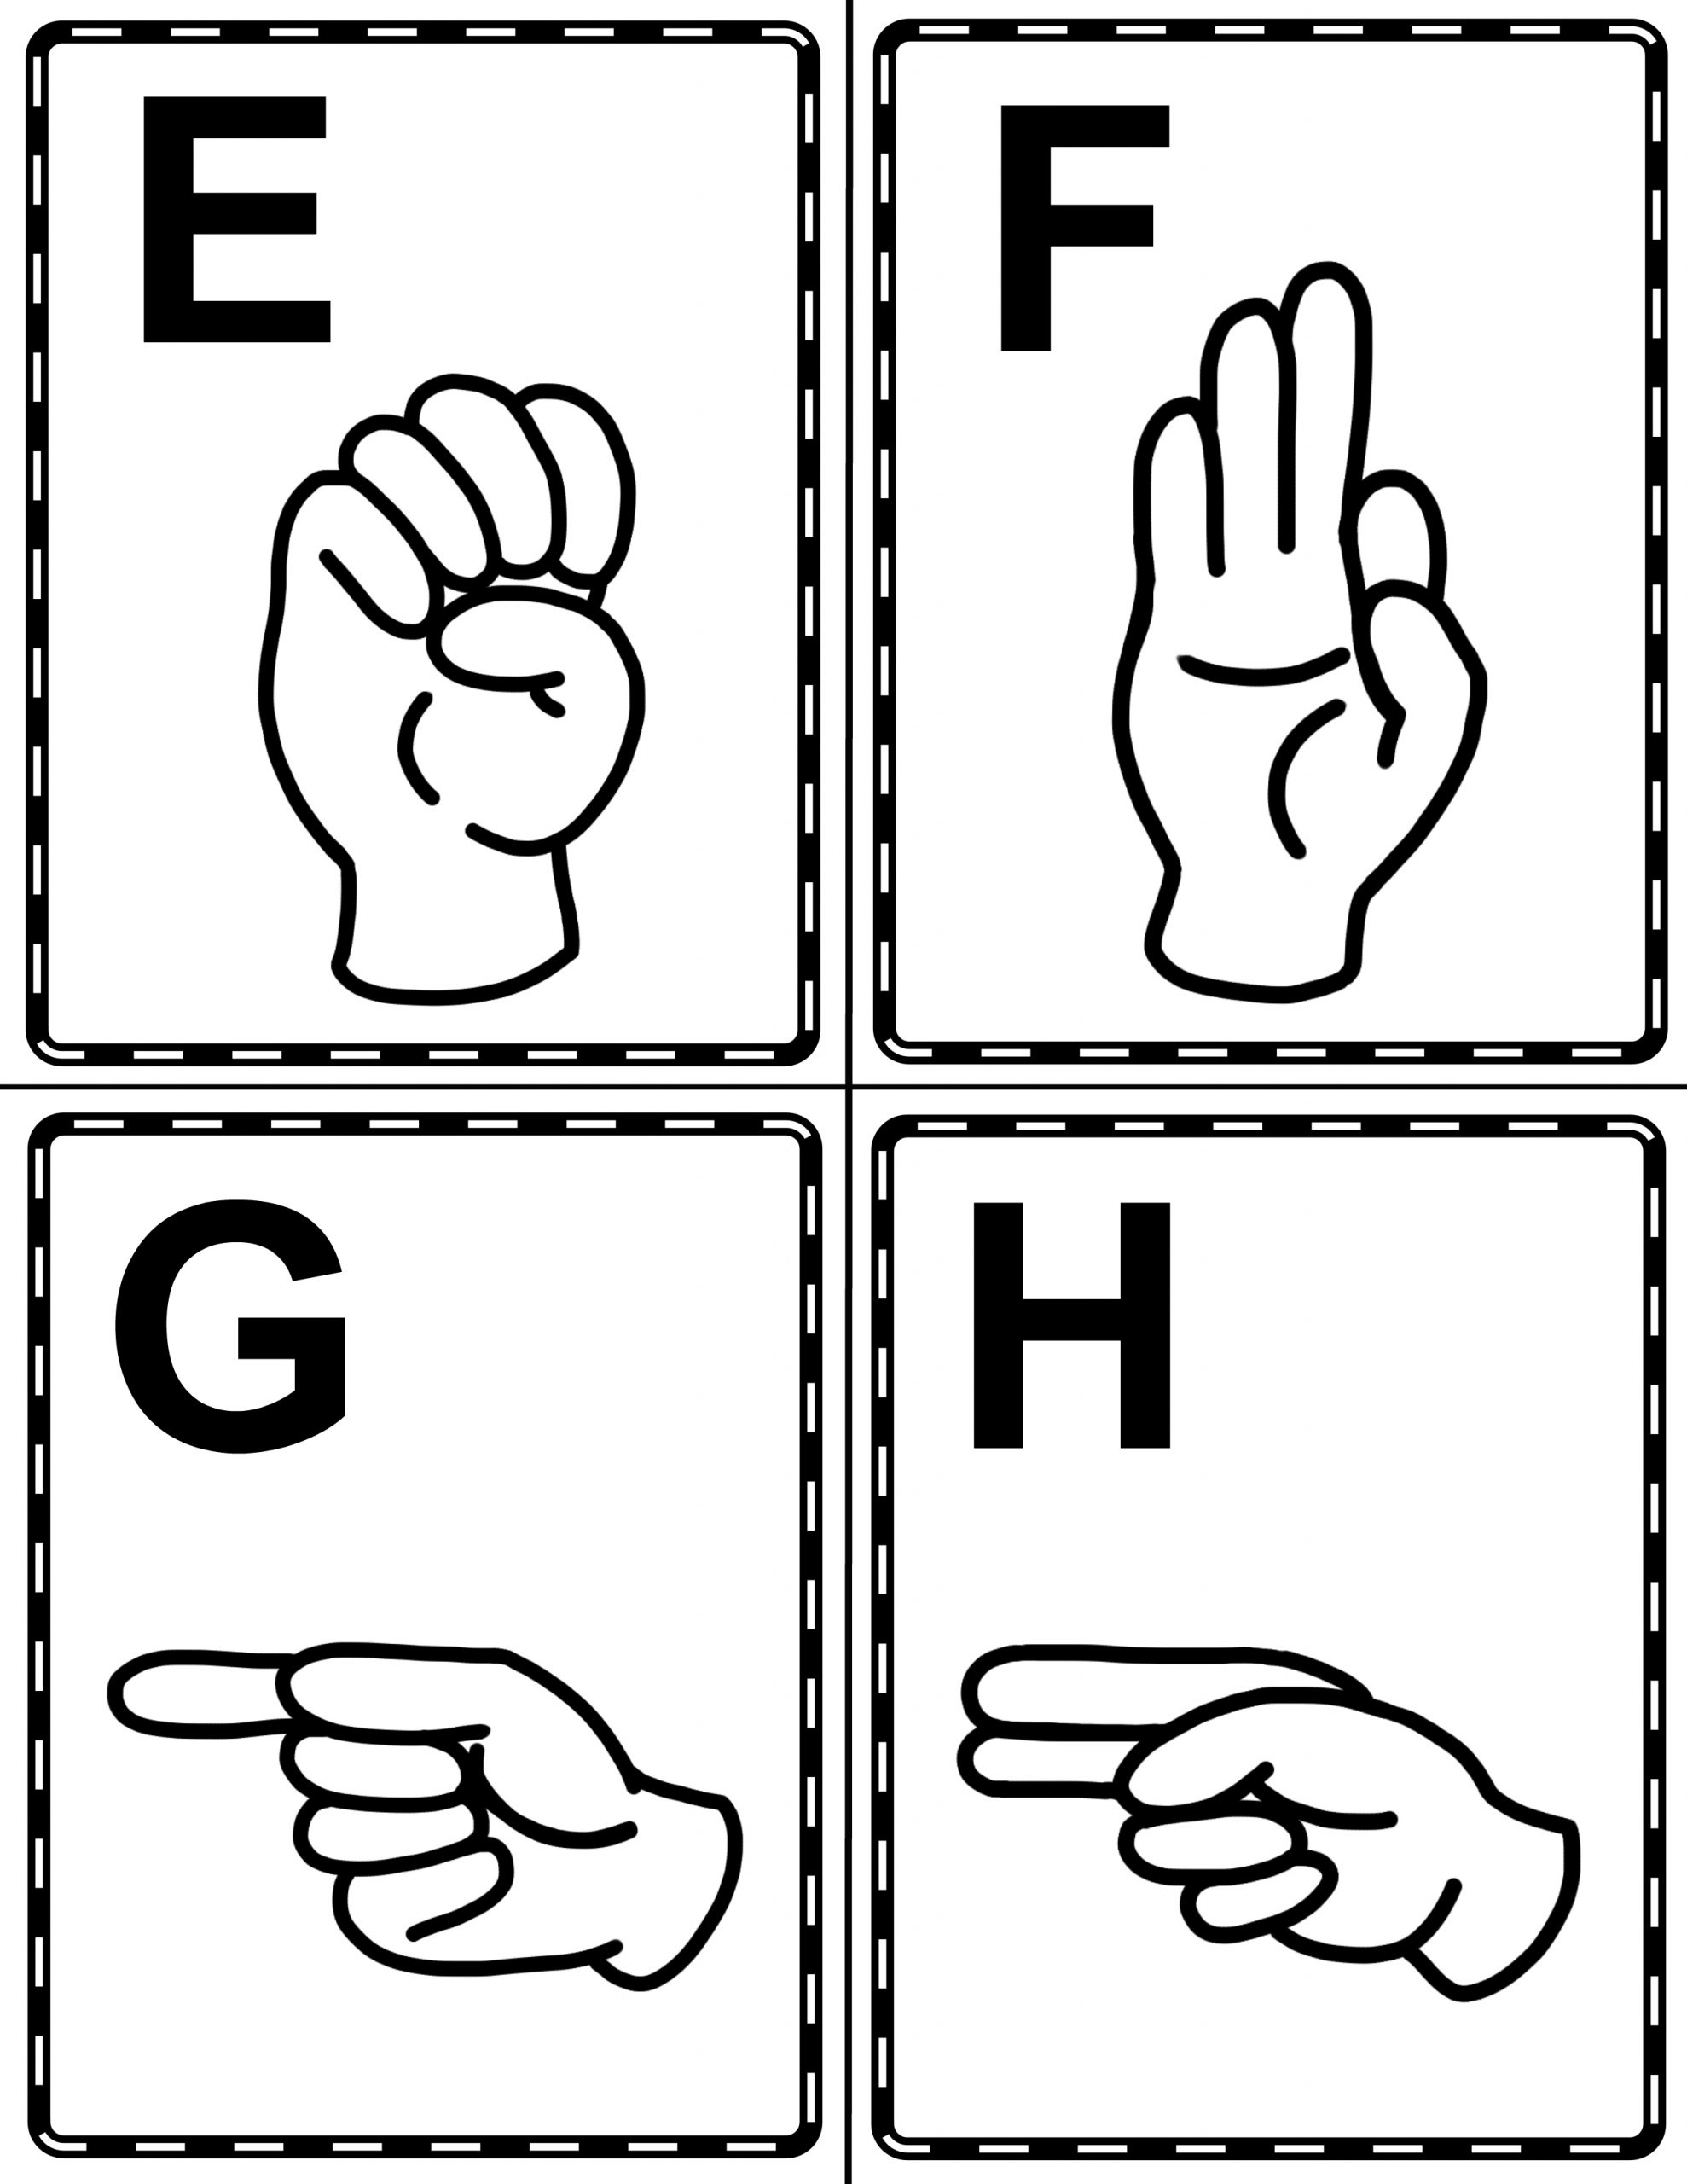 Sign Language Alphabet Book